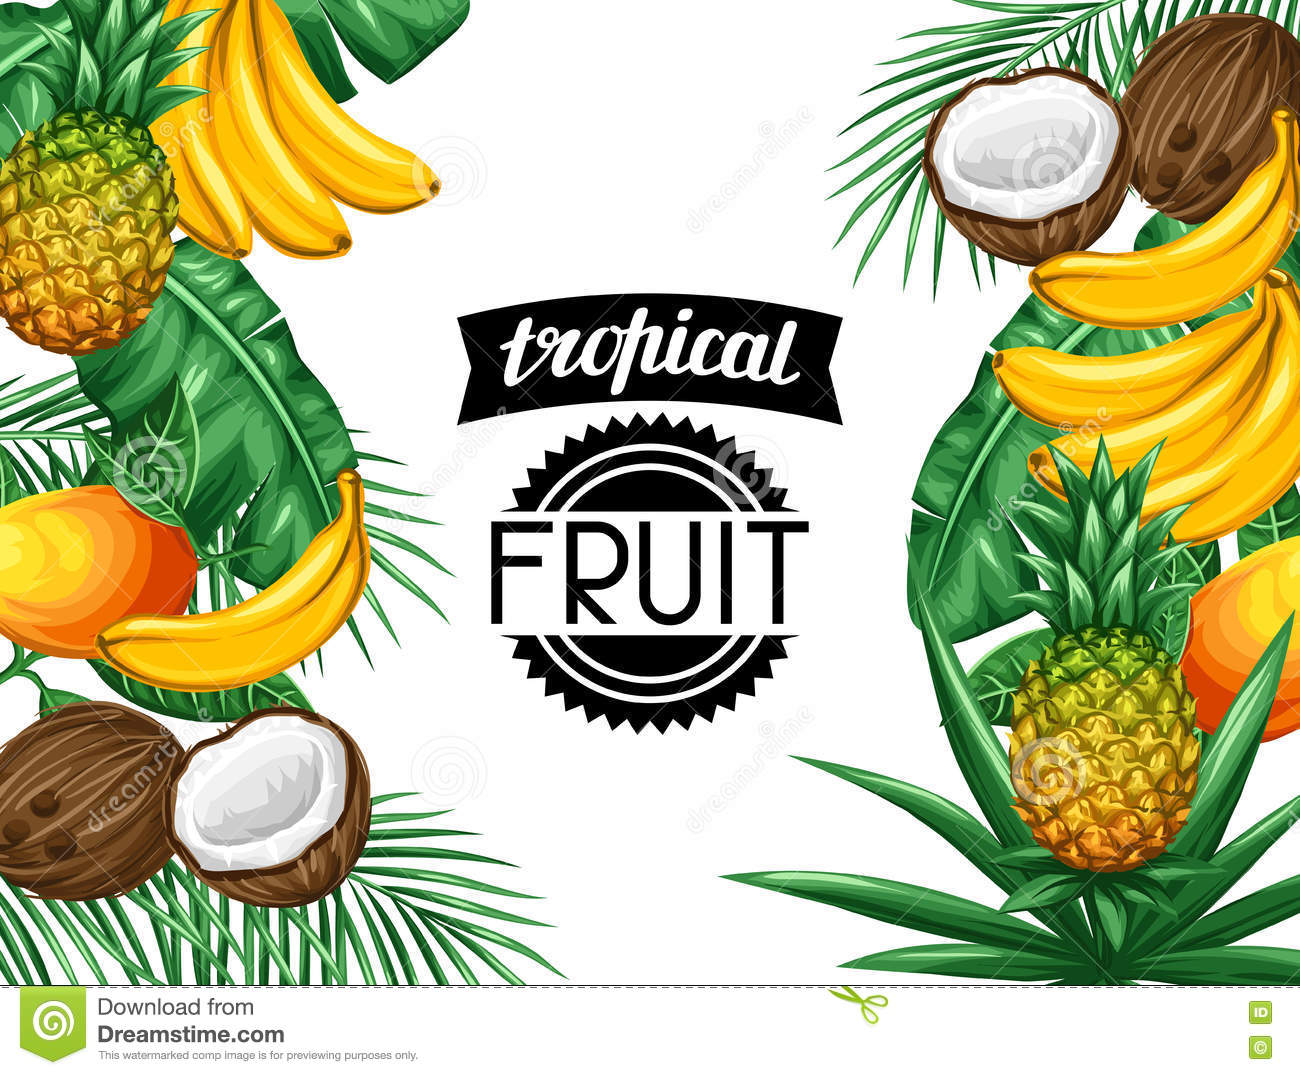 Background With Tropical Fruits And Leaves Design For